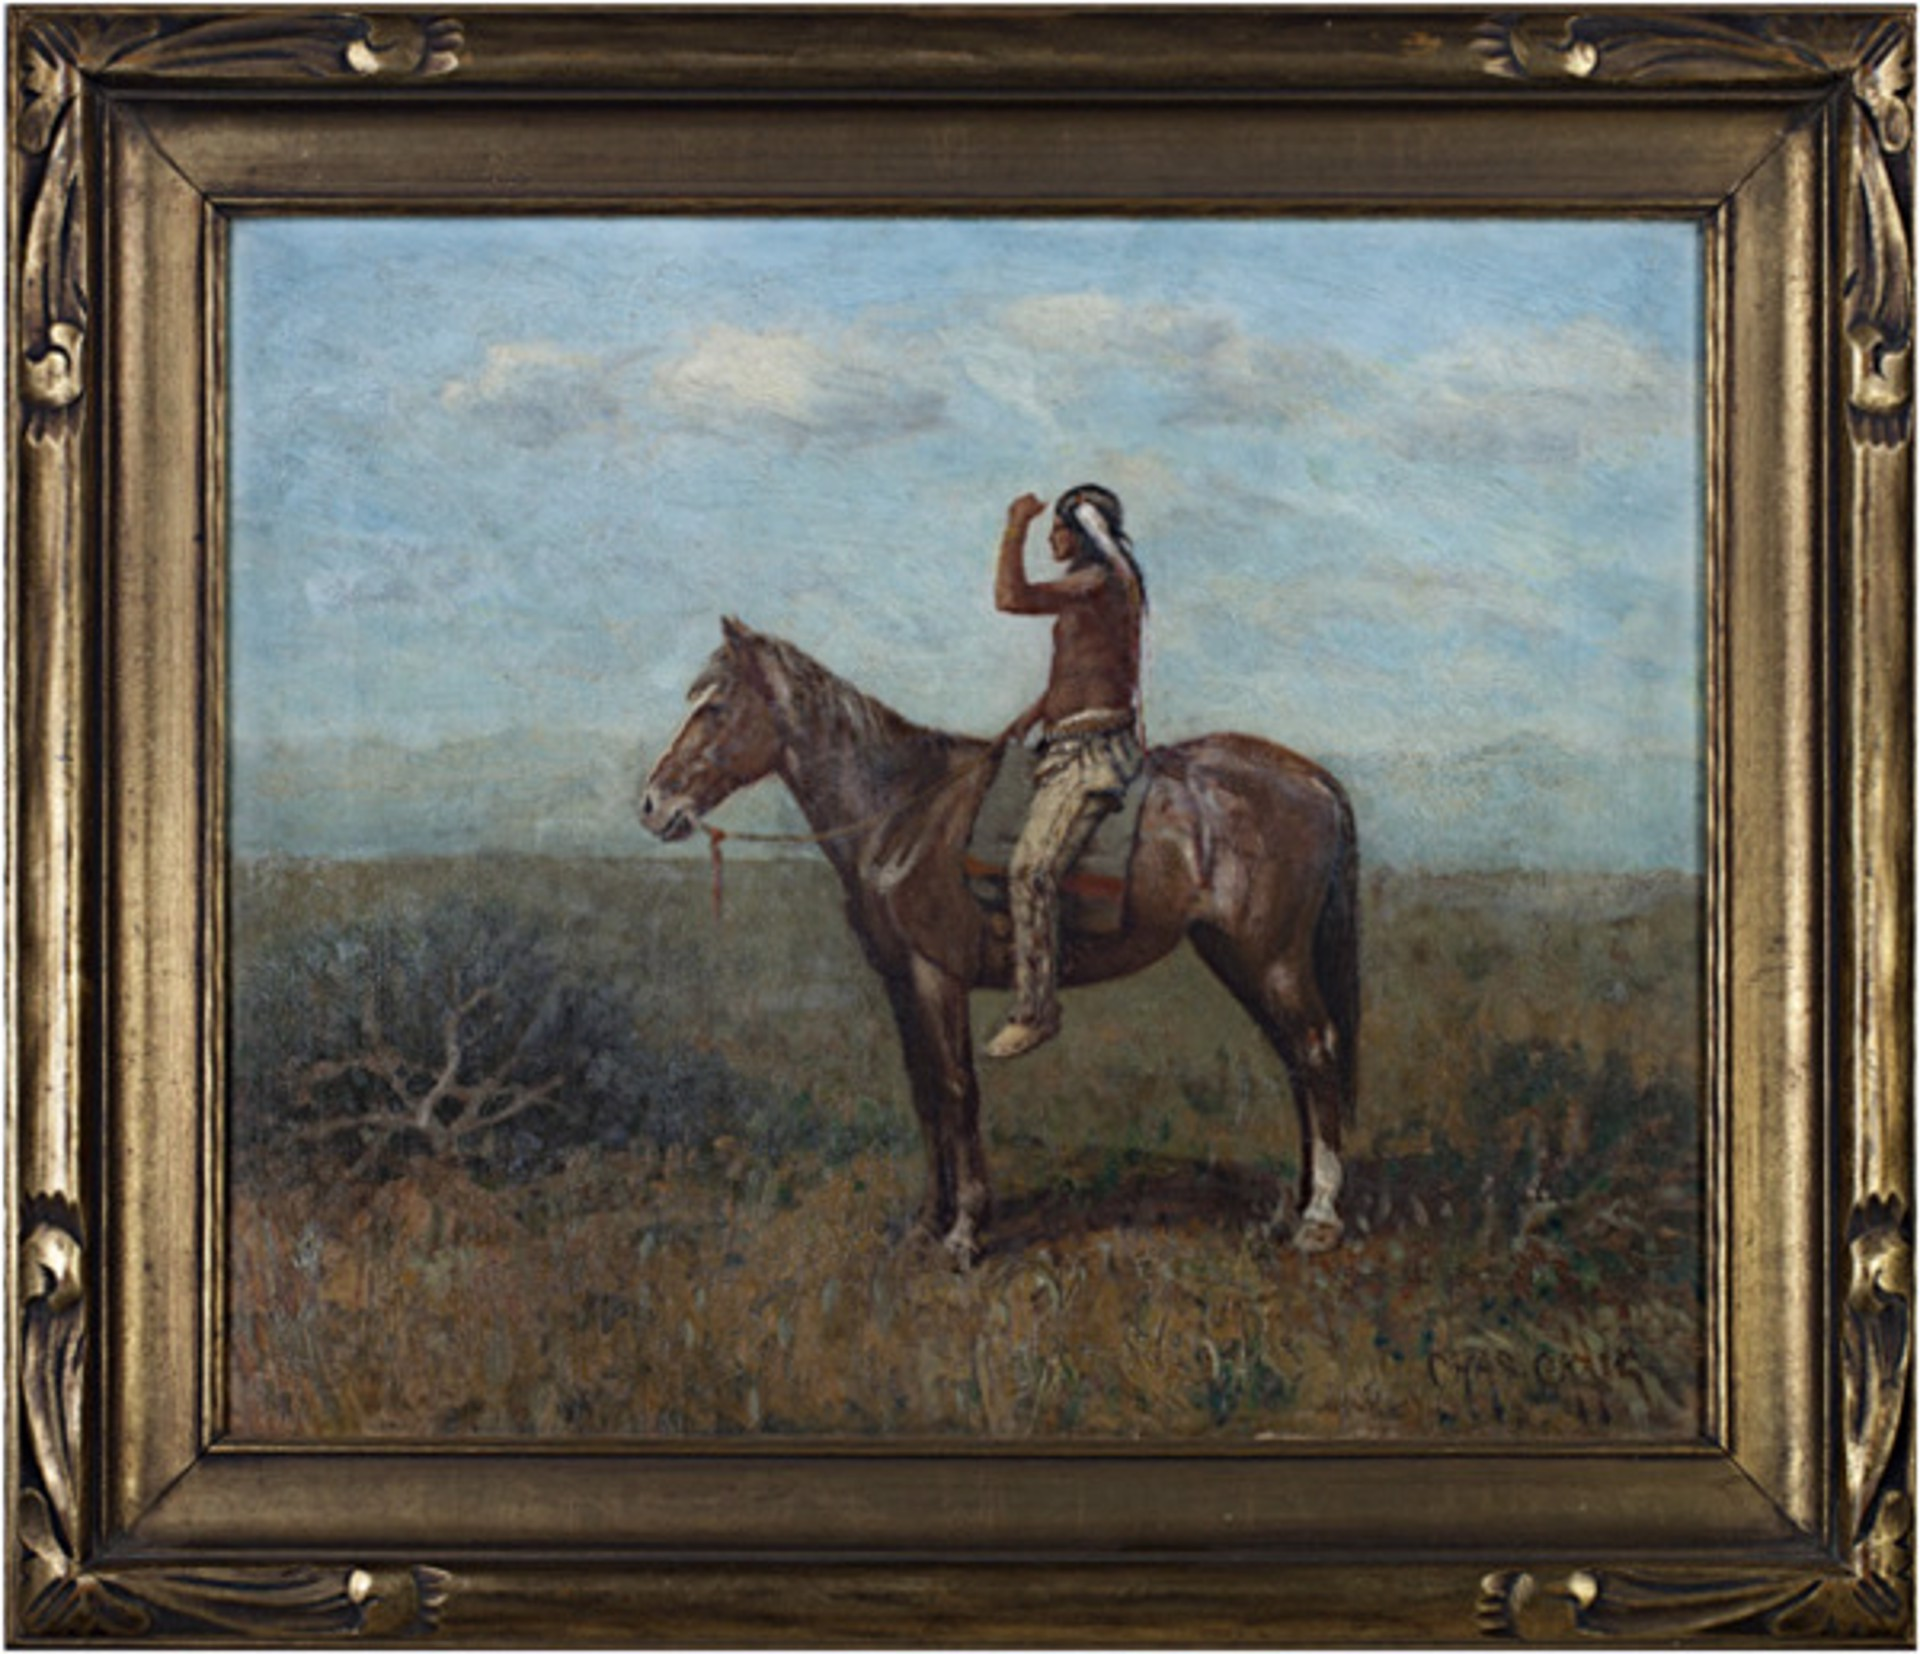 Native American on Horseback (To be sold as pair with 11060g-Cowboy on Horseback) by Charles Craig